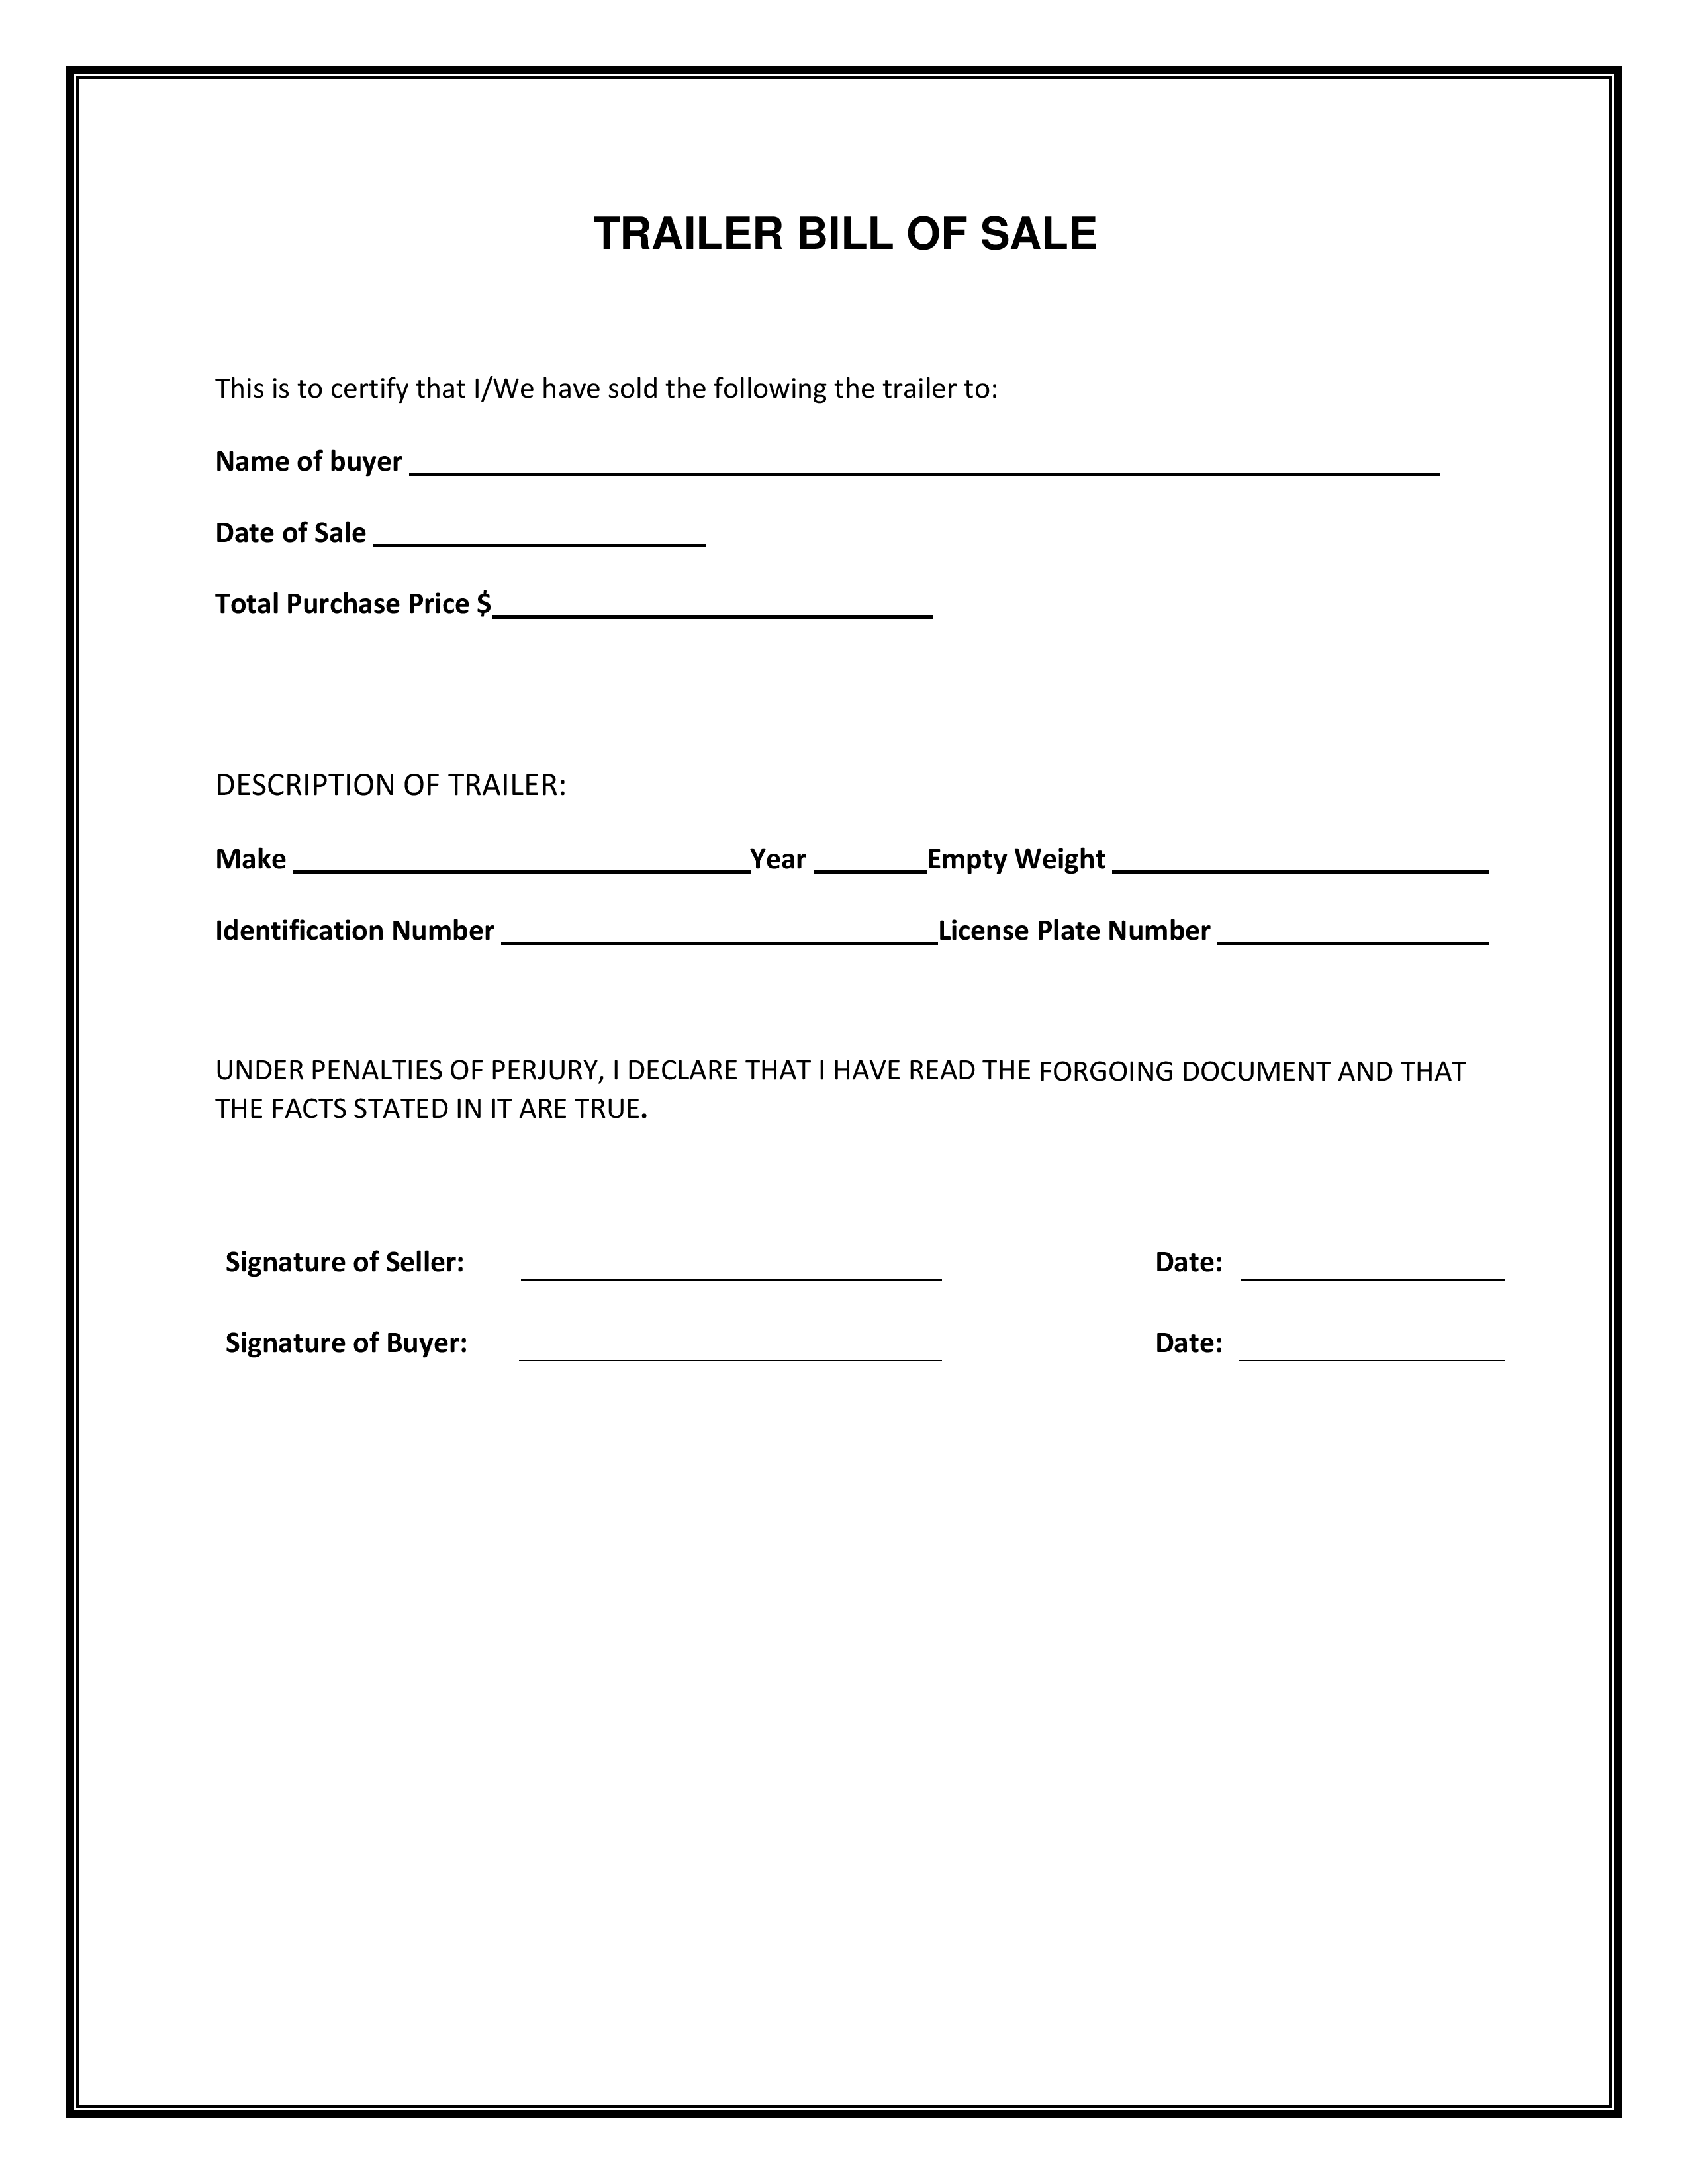 Trailer Only Bill Of Sale Forms and Templates Fillable